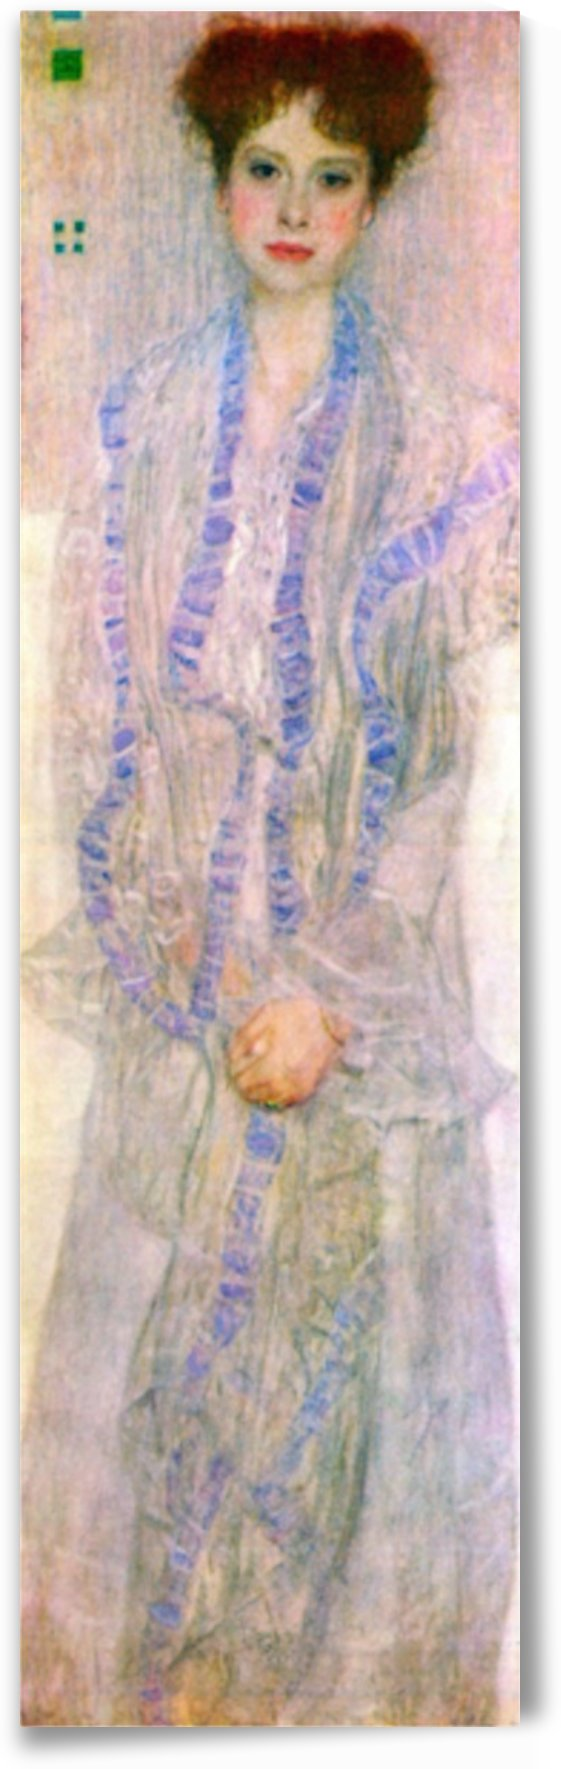 Portrait of Gertha Fersovanyi by Klimt by Klimt